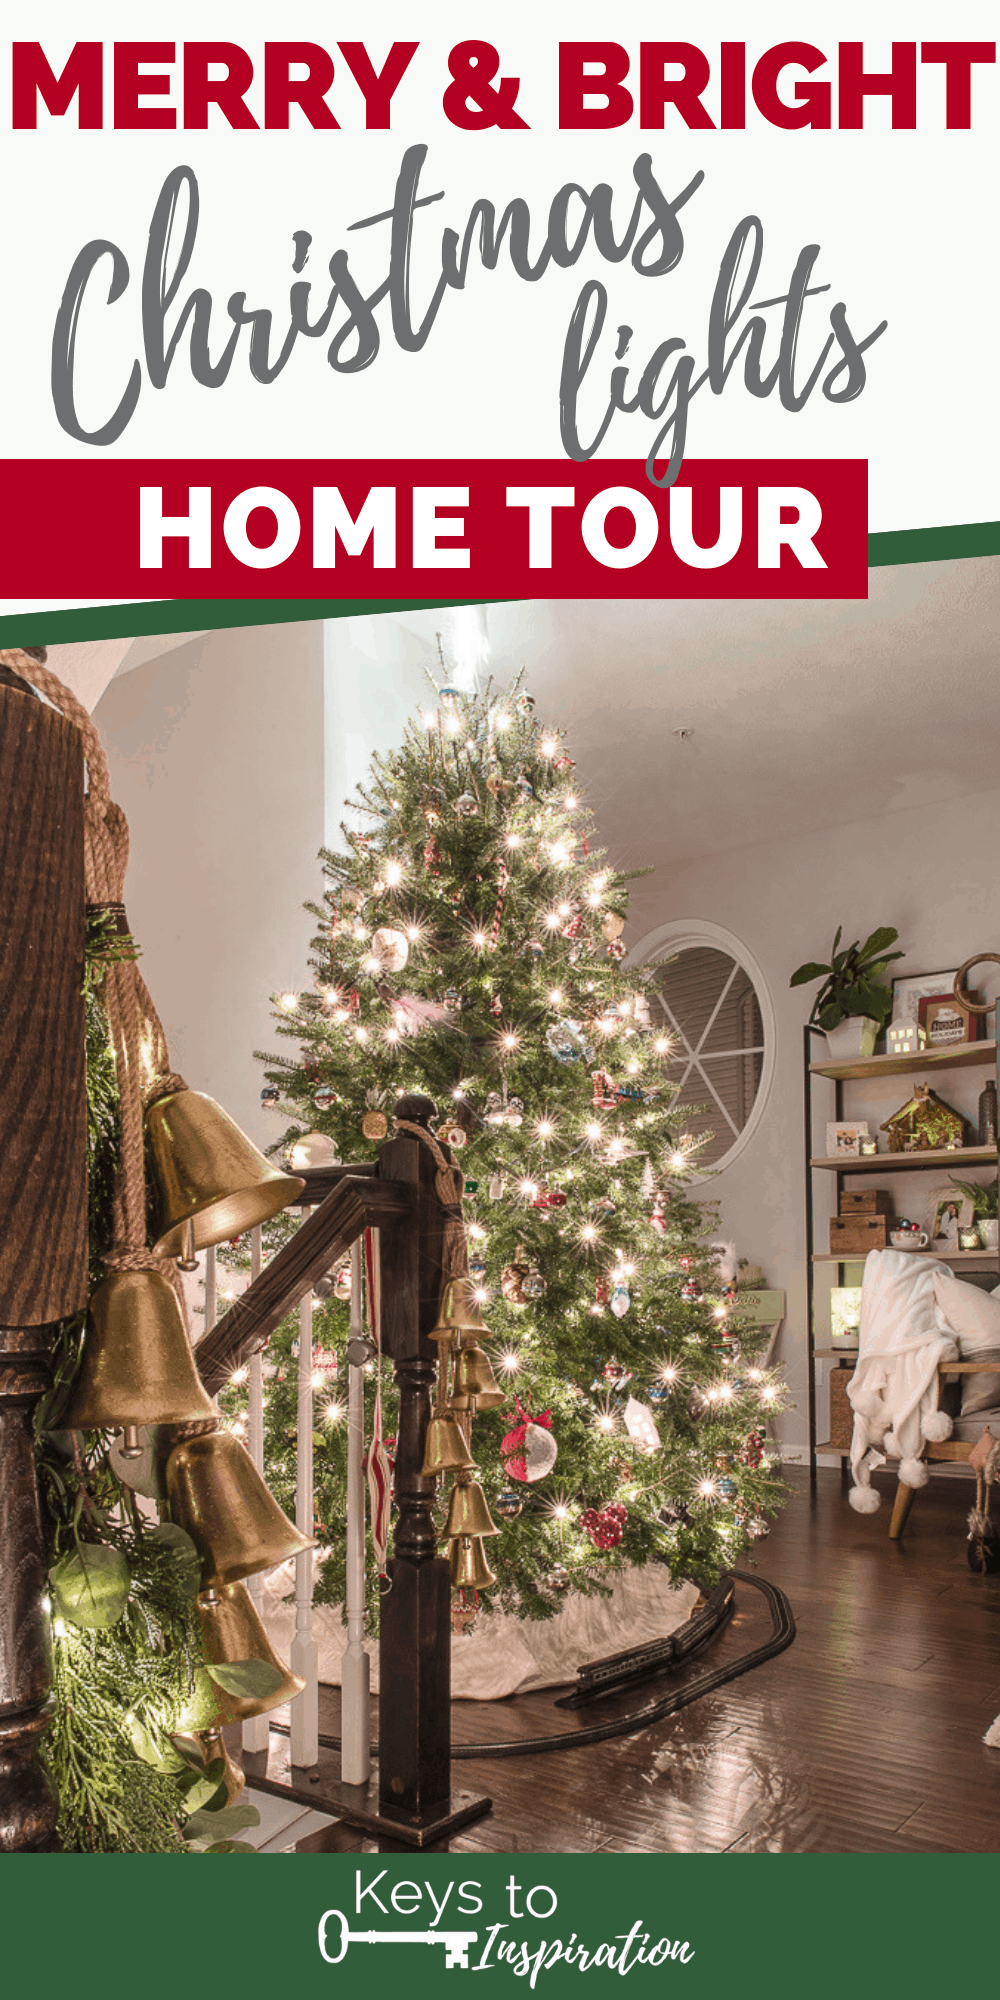 Merry and Bright Christmas lights home tour Christmas tree lit up at night